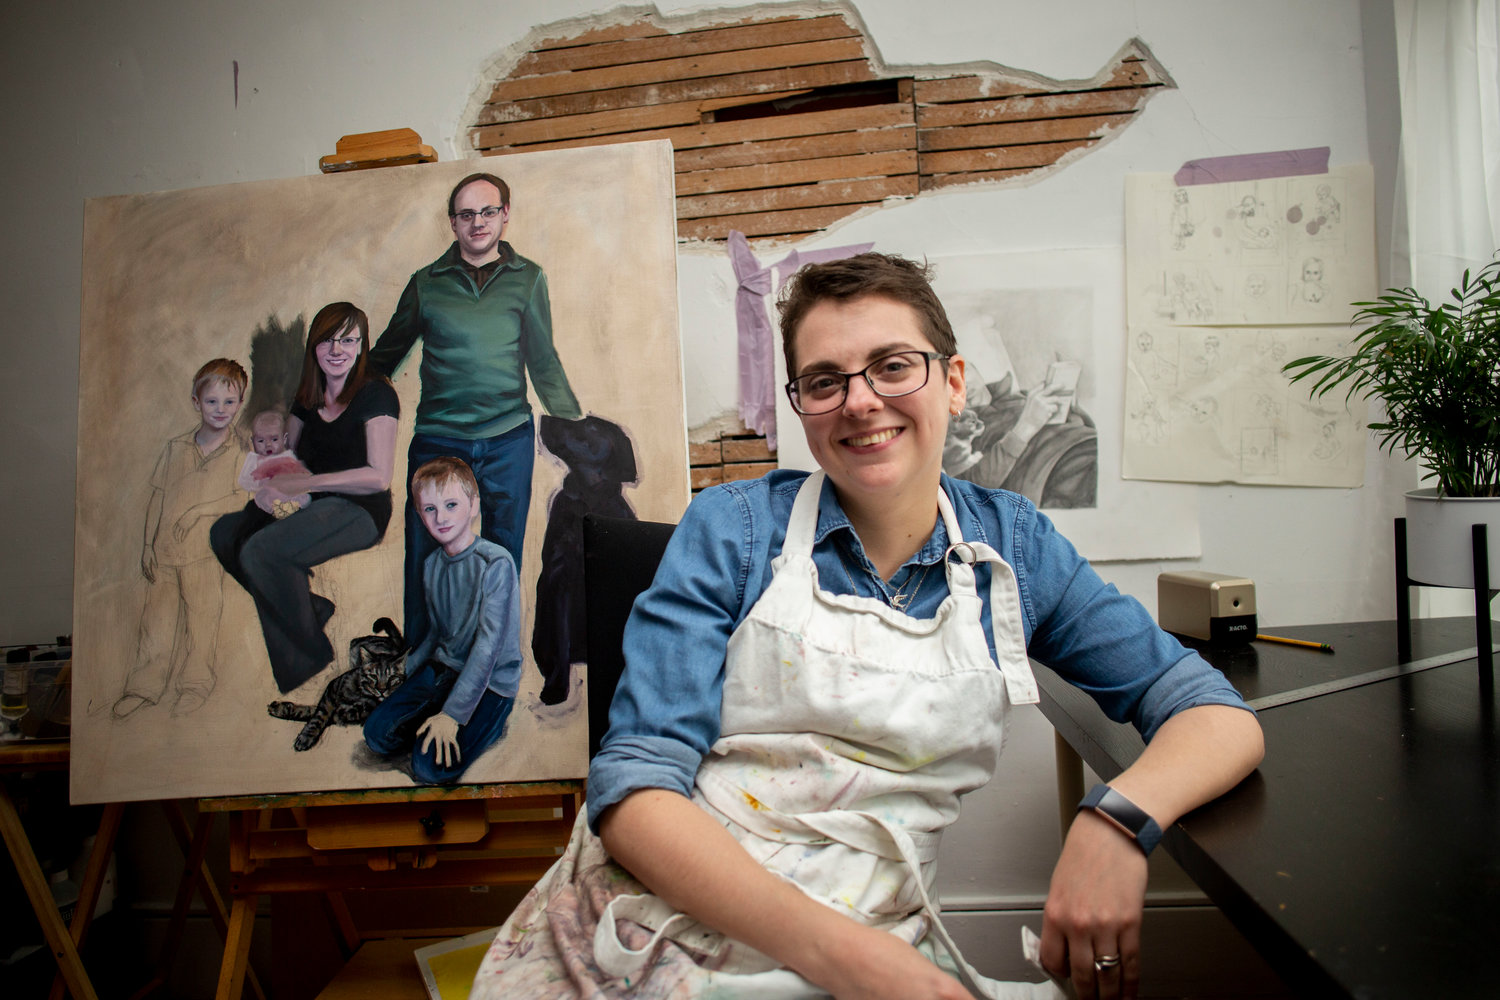 Emily Kibbe in her studio space at Cedar Street Art Collective where she recreates portraits of families and their loved ones.